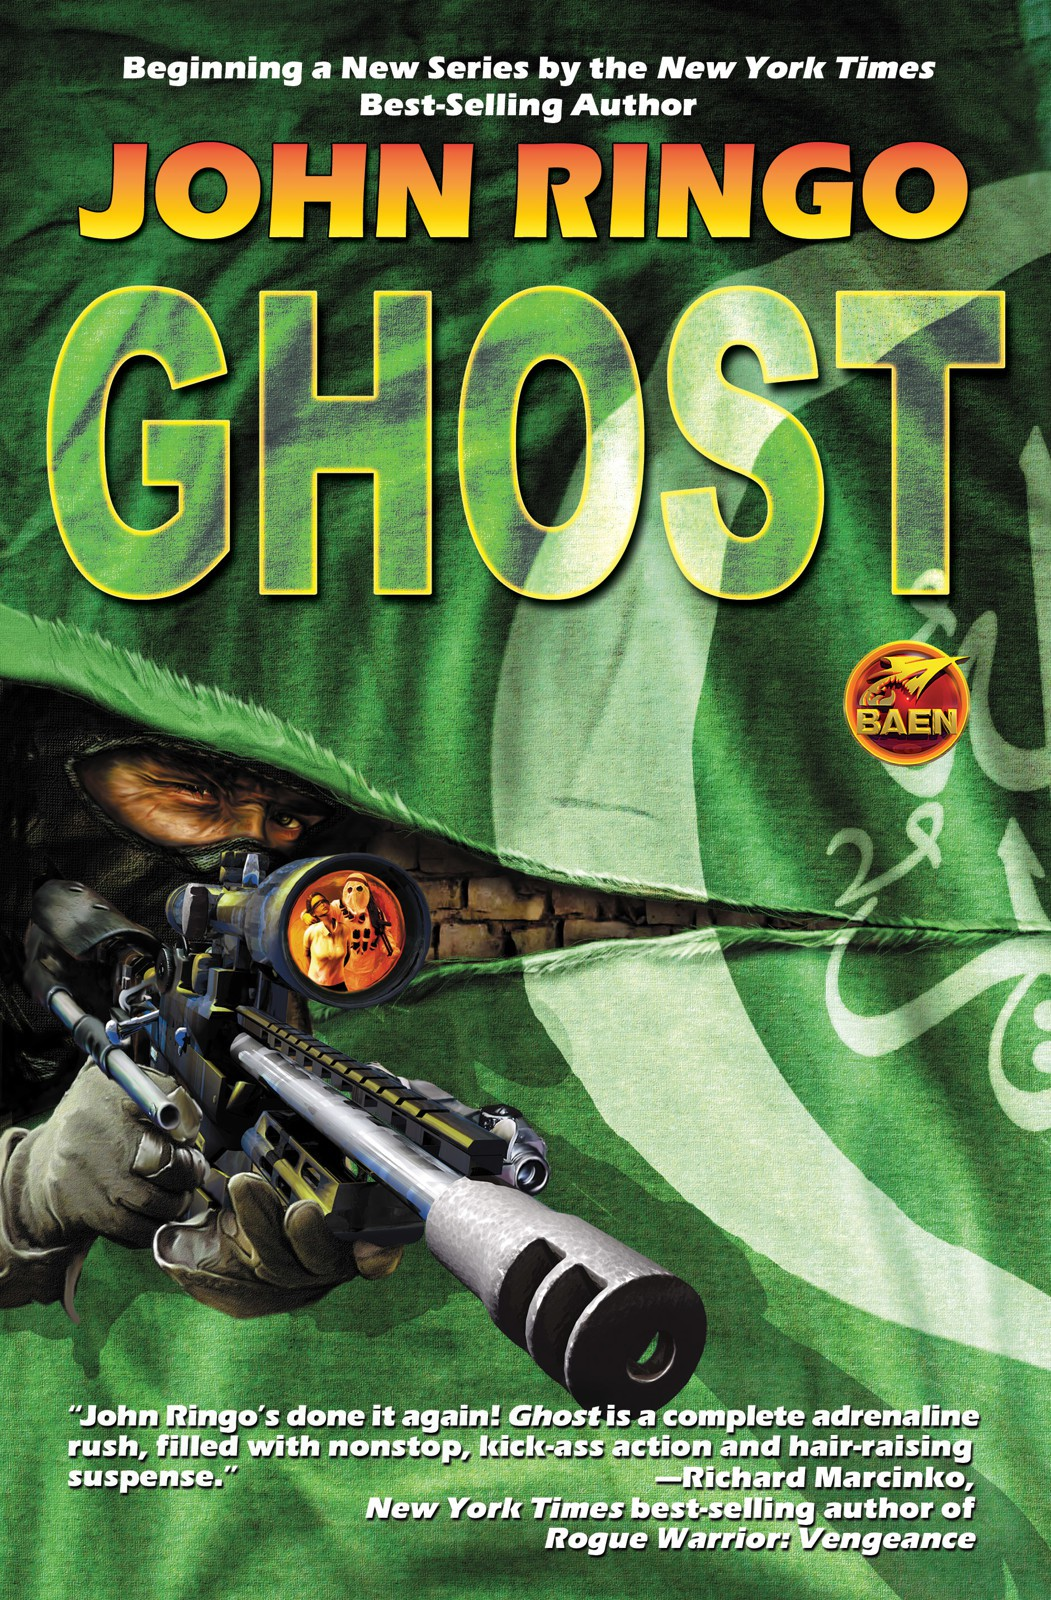 """Ghost: The phrase """"the good, the bad and the ugly"""" fits this book quite well."""